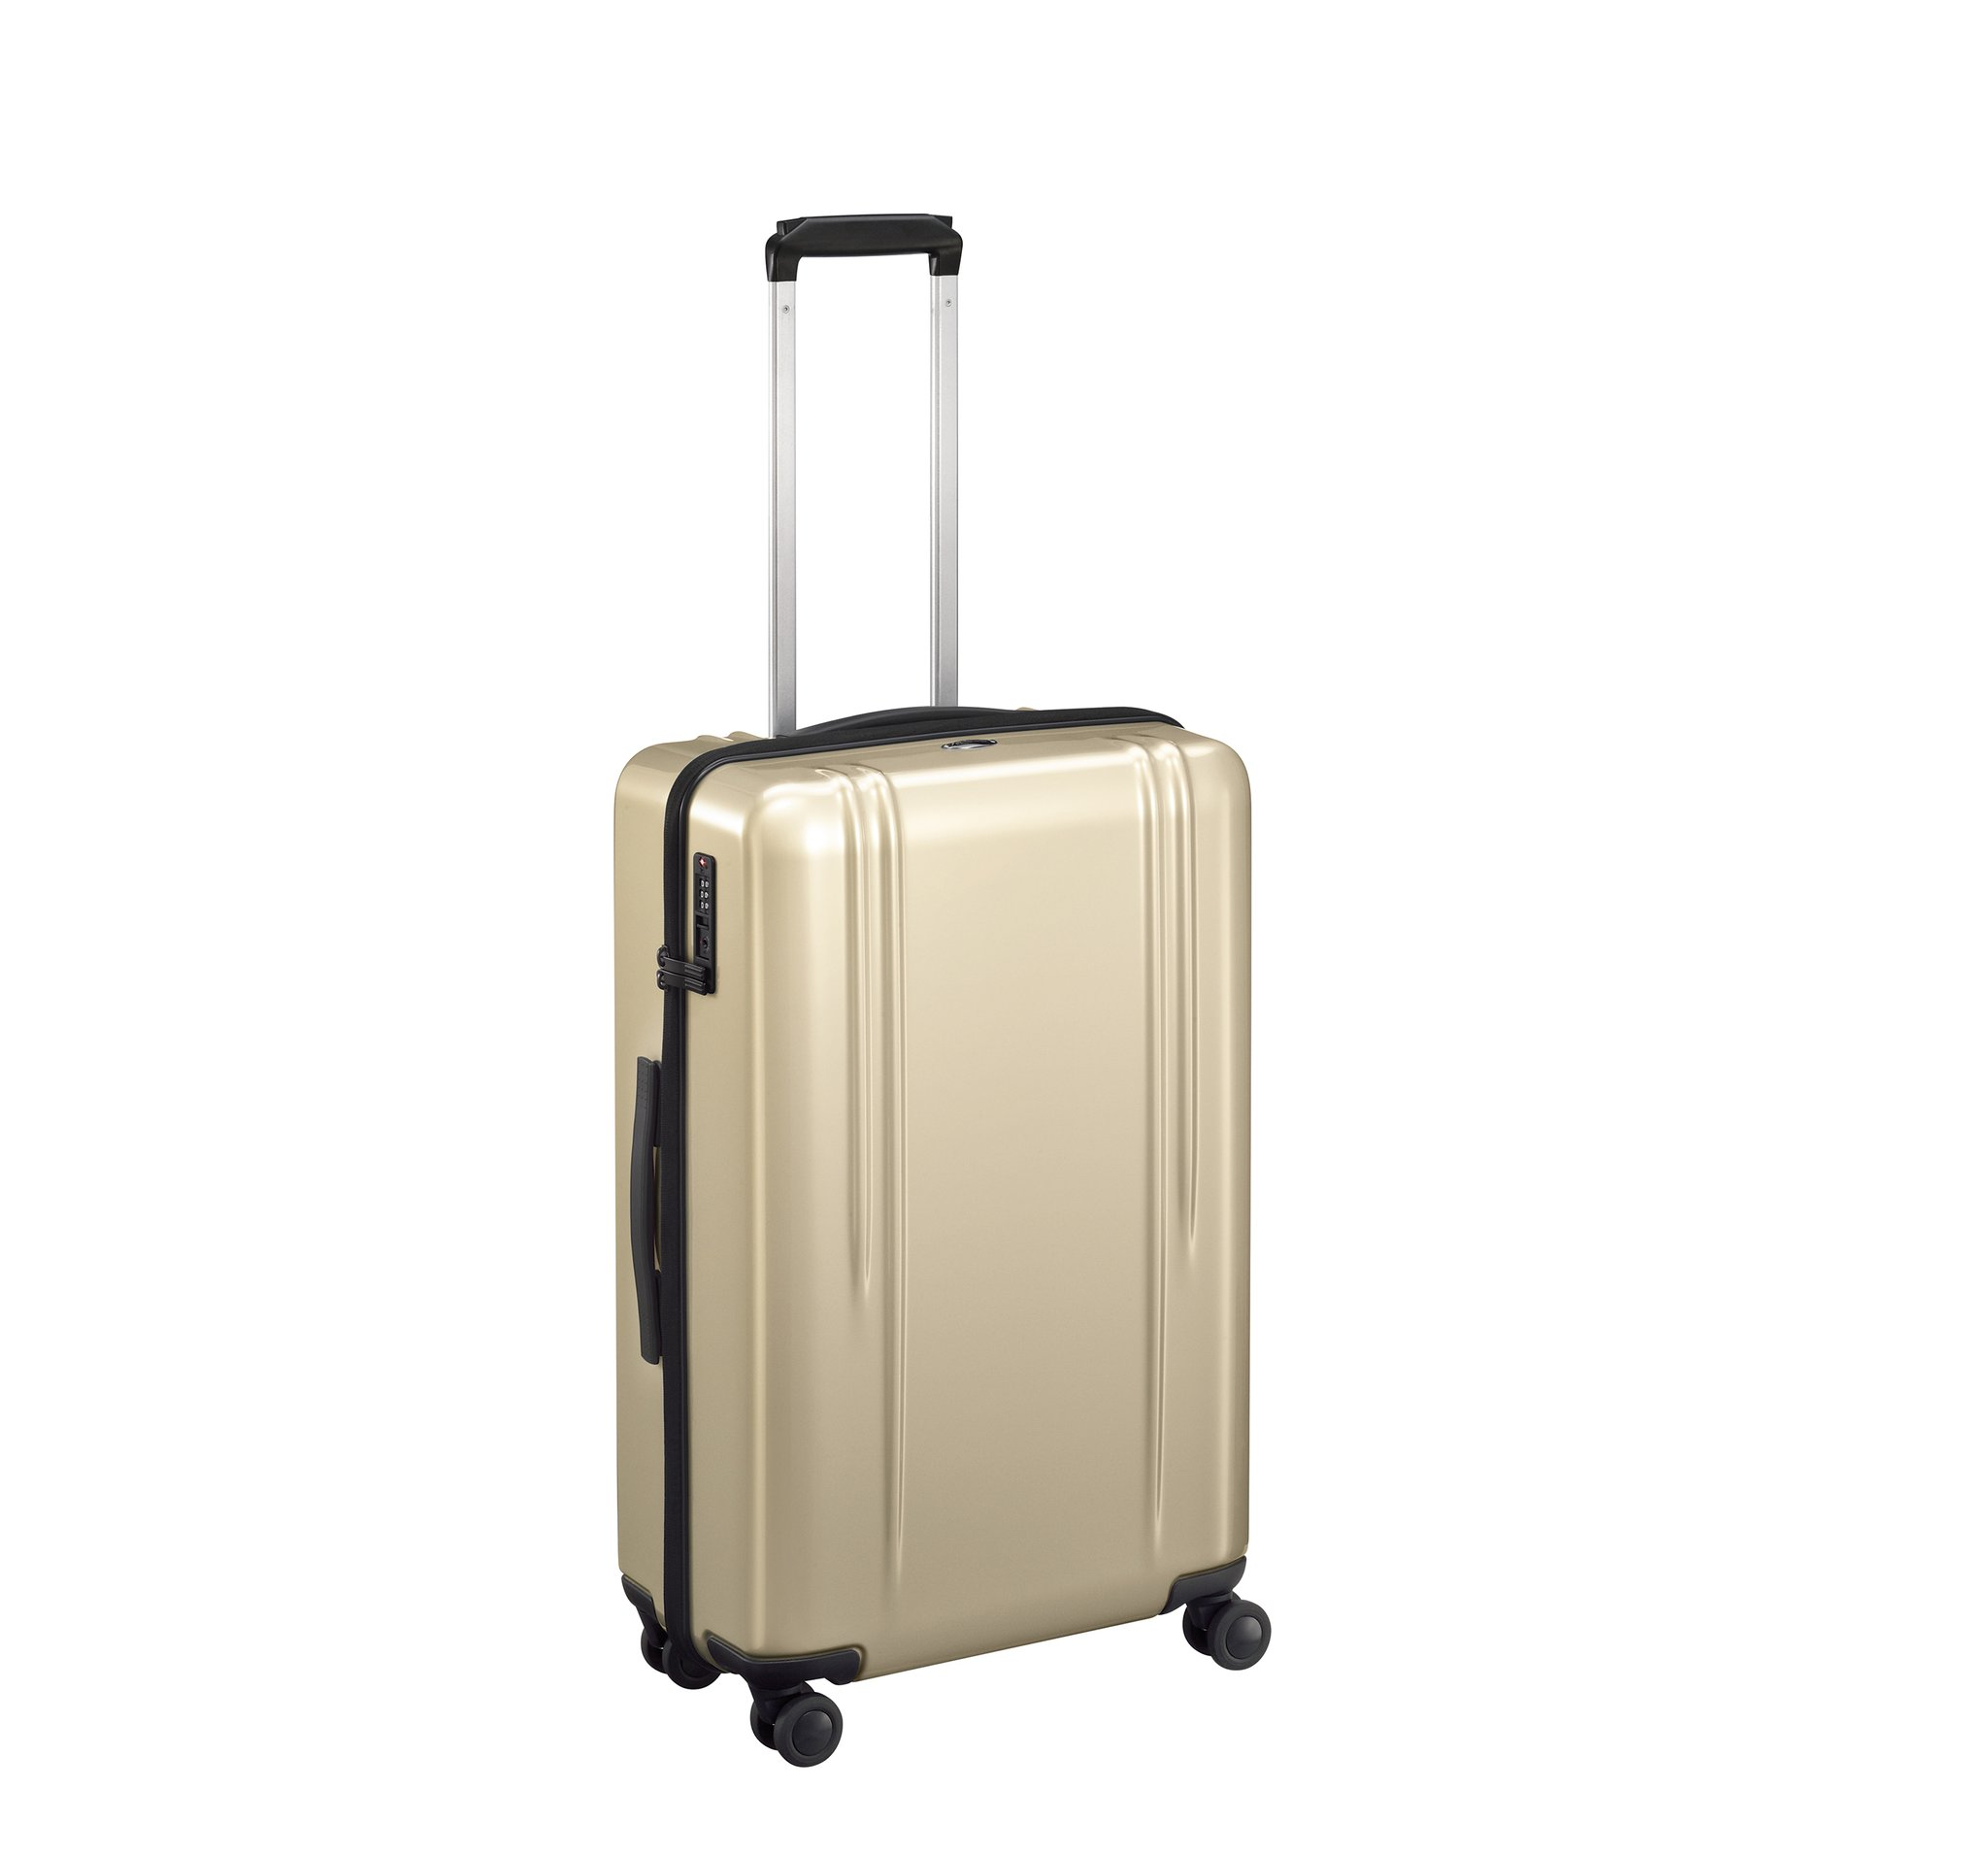 "ZRL - 26"" Lightweight Spinner Luggage by Zero Halliburton (Color: Polished Gold)"